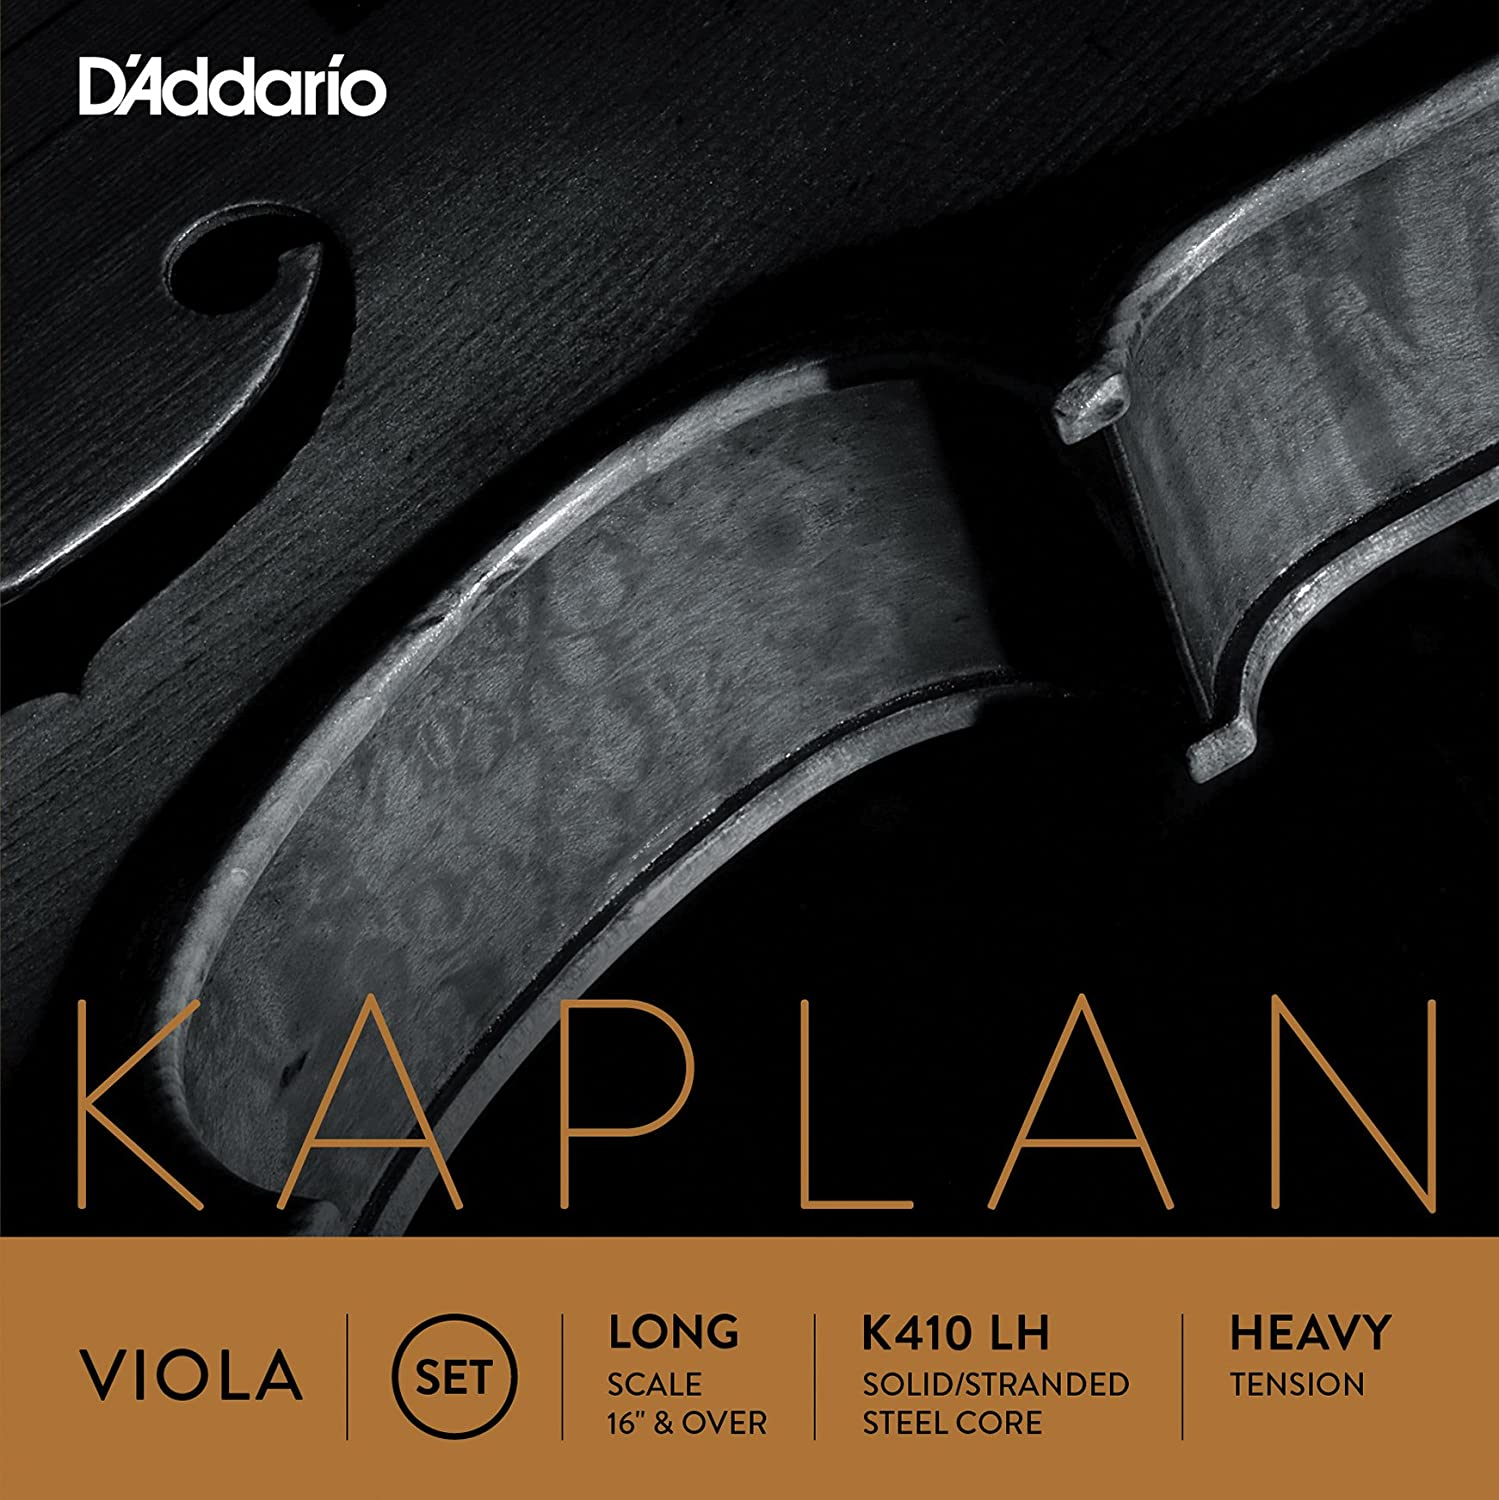 D'Addario Kaplan Viola String Set, Long Scale, Medium Tension D'Addario &Co. Inc K410 LM